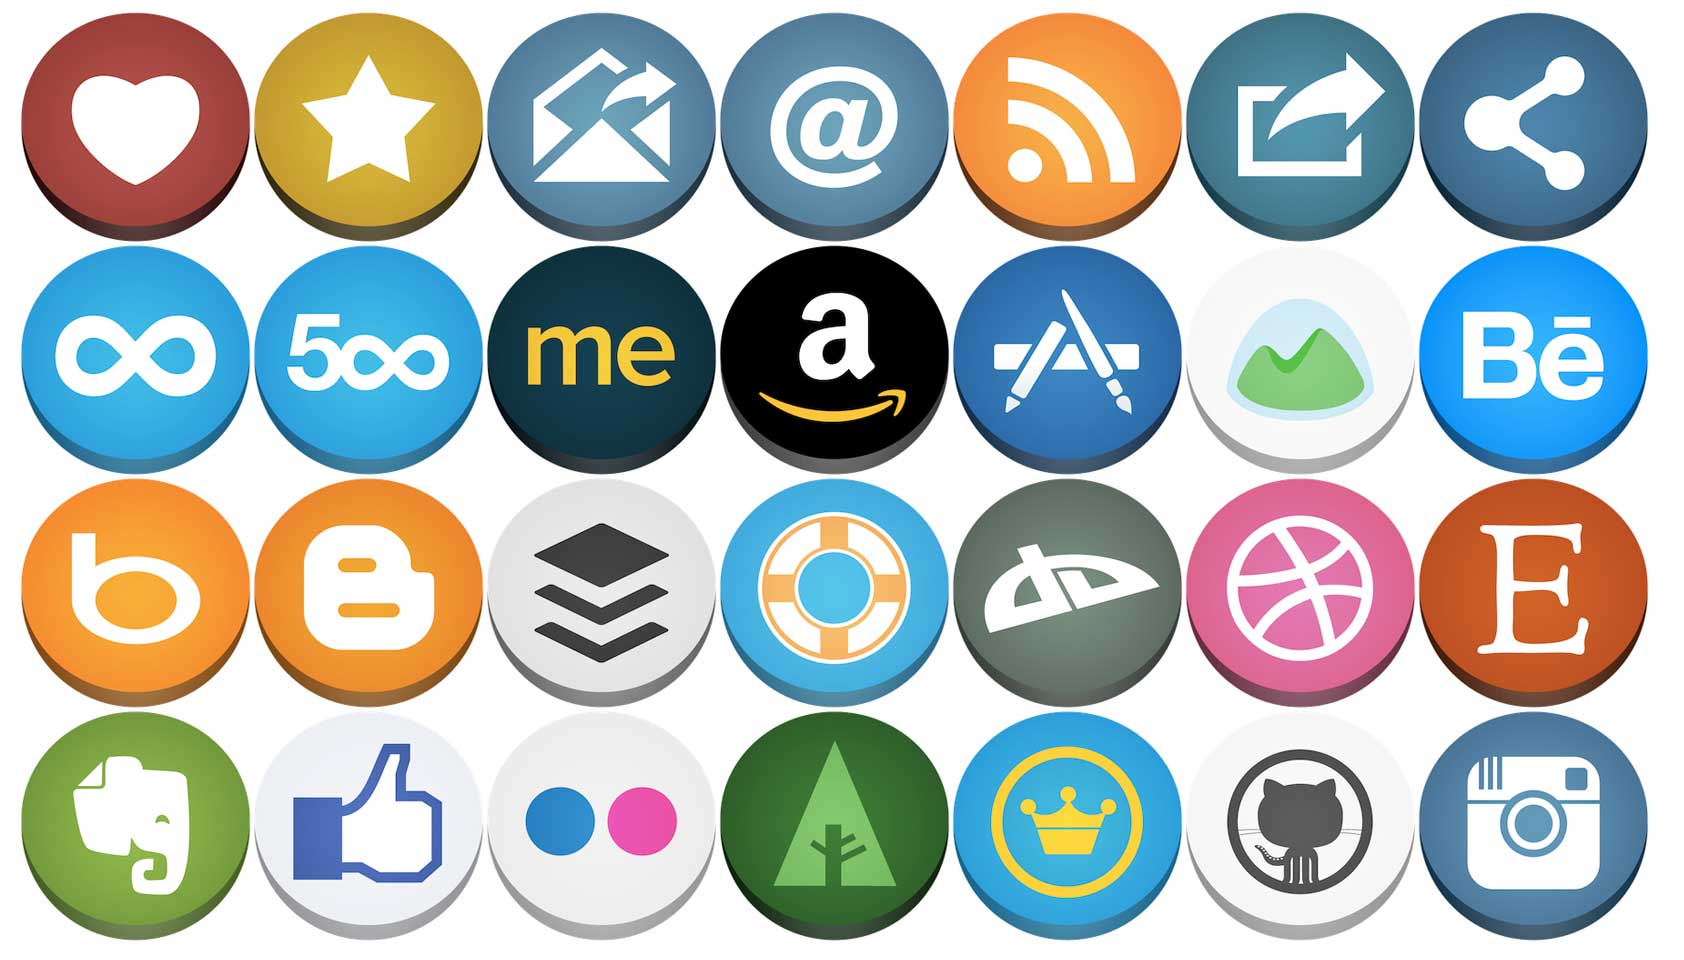 Free download: Flat but not flat rounded social icons